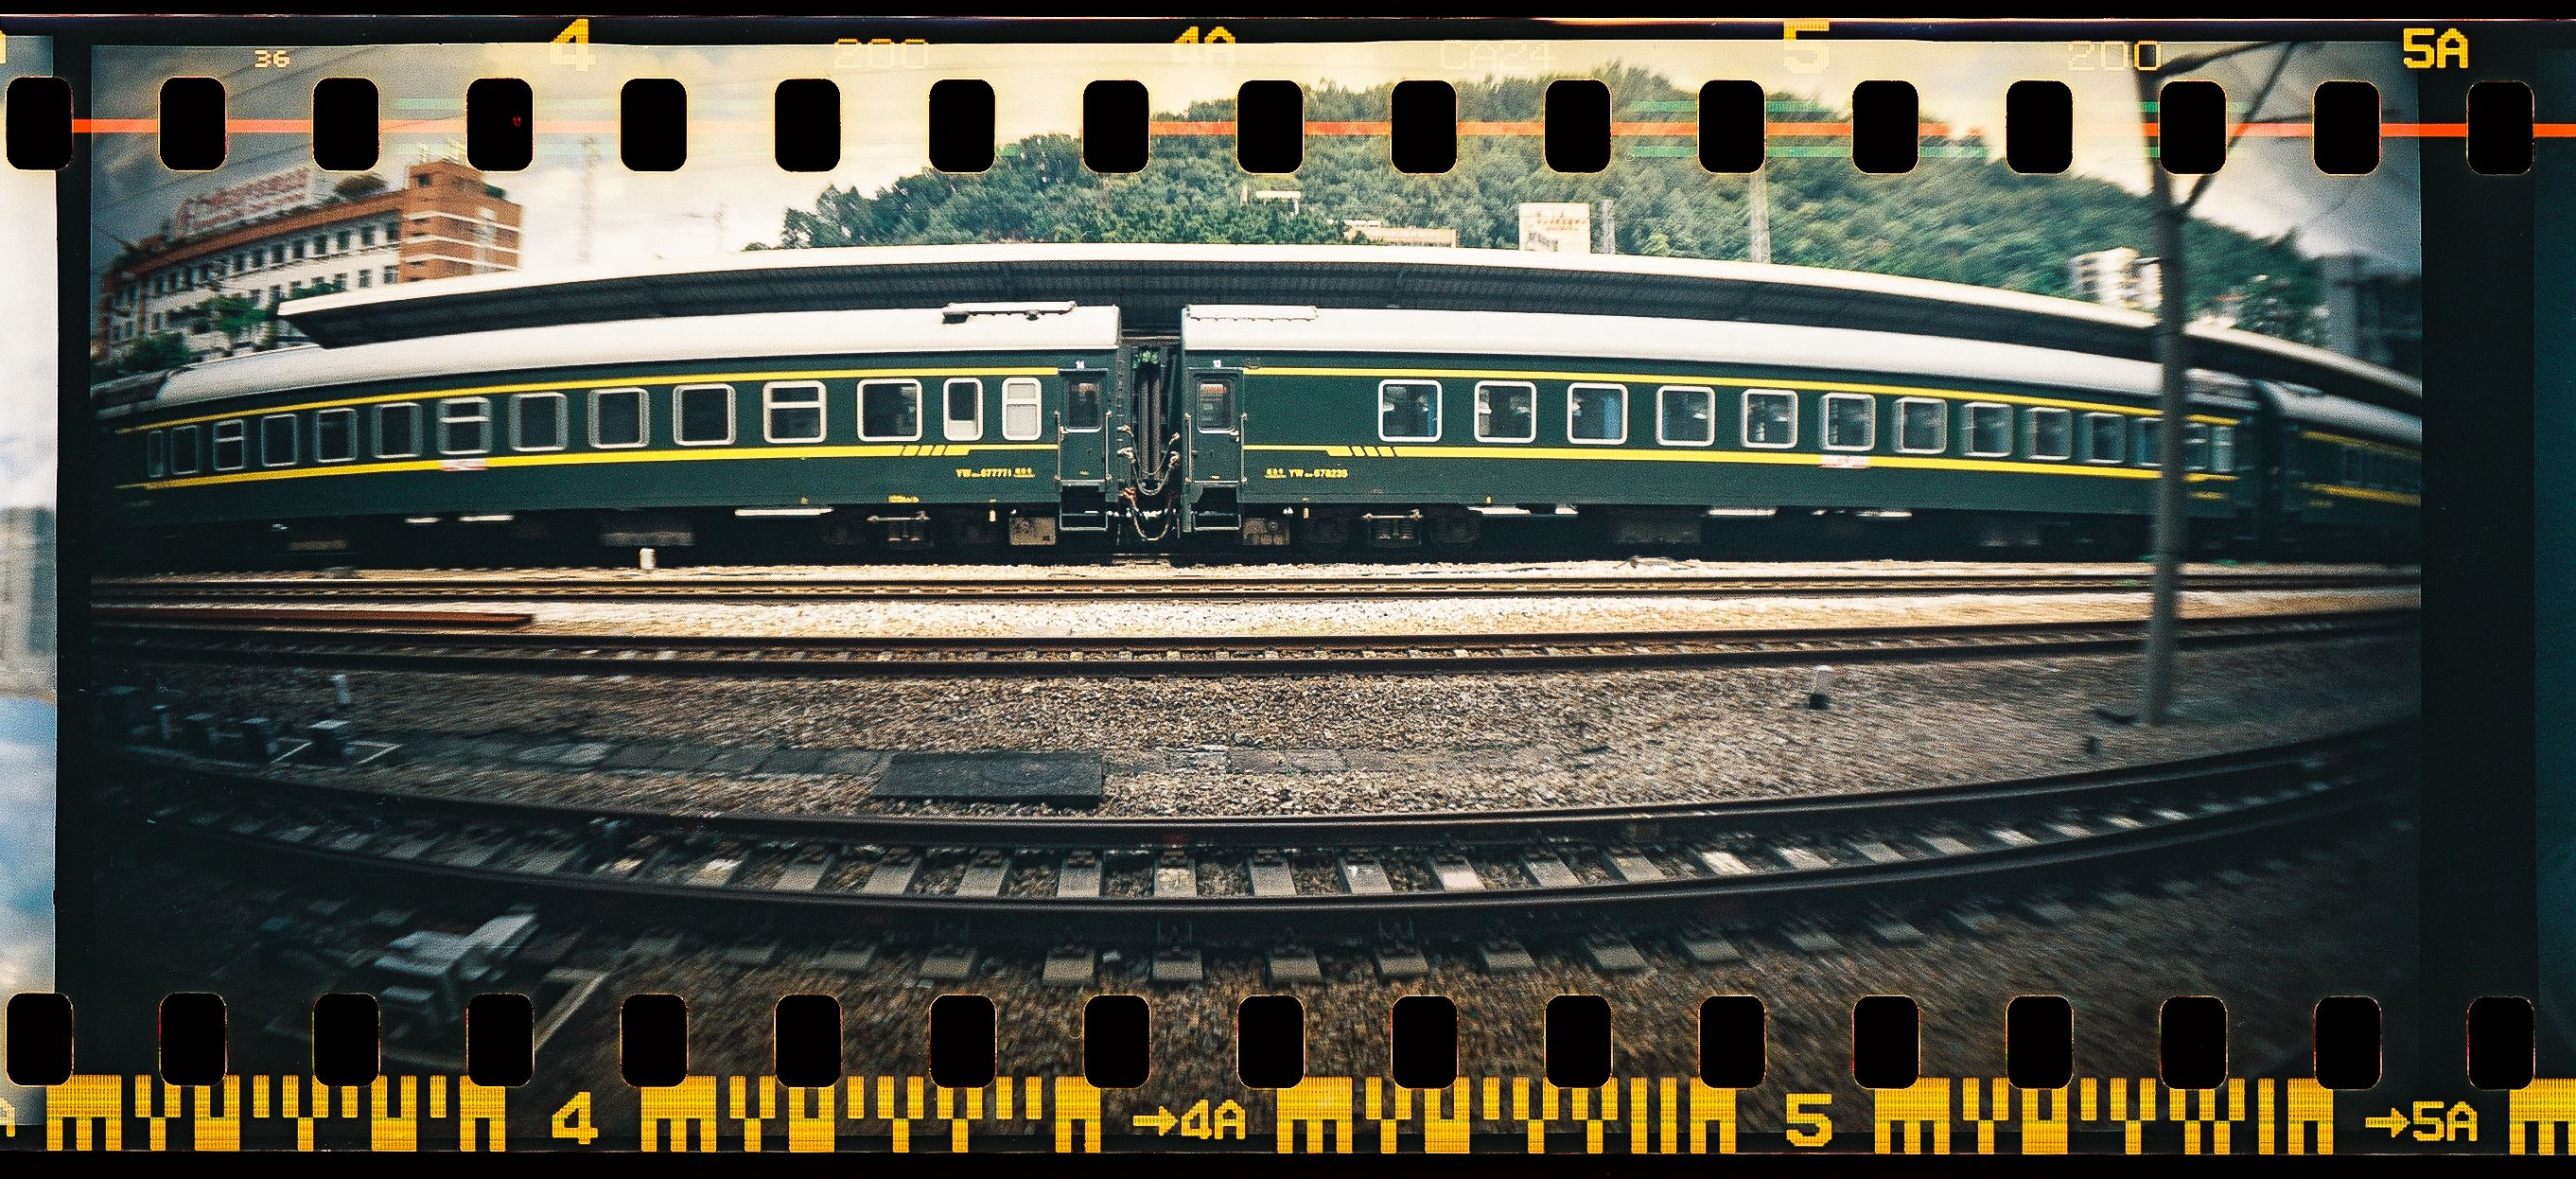 Chinese trains (Pic: Jay SE1)